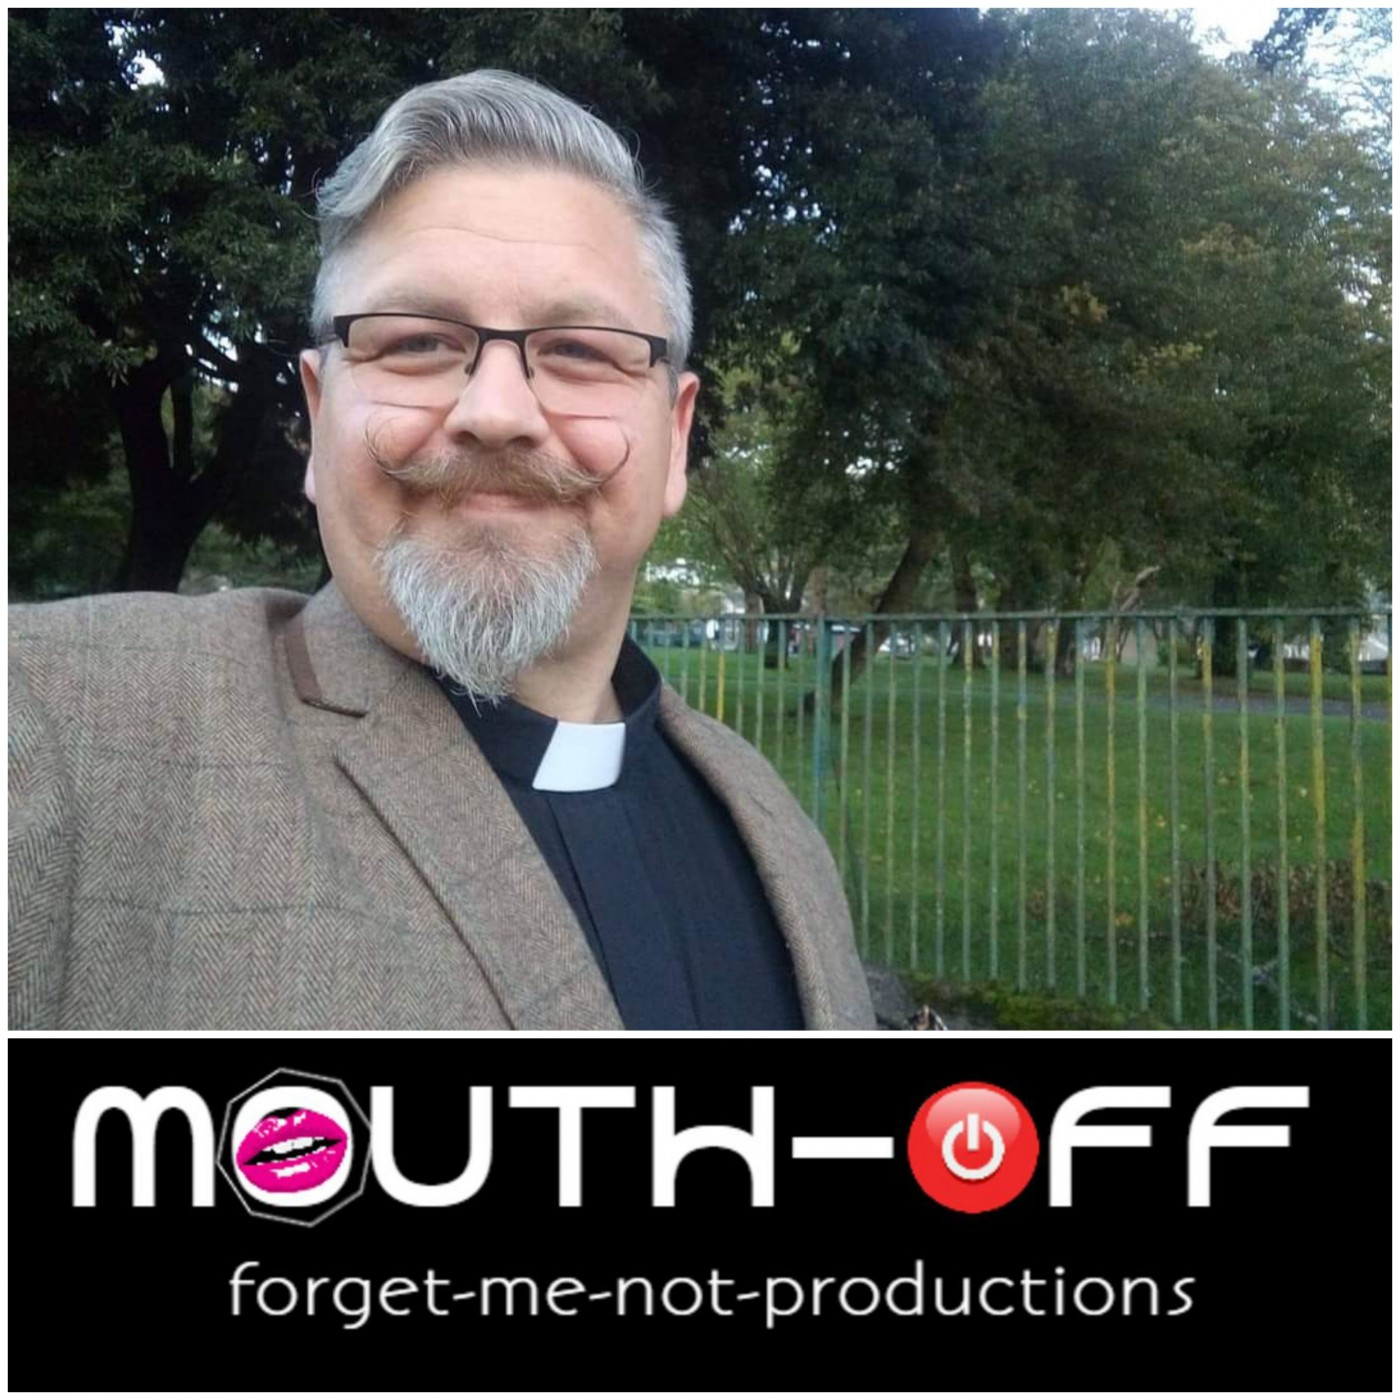 Mouth-Off Episode 2: Whose story is it to tell?